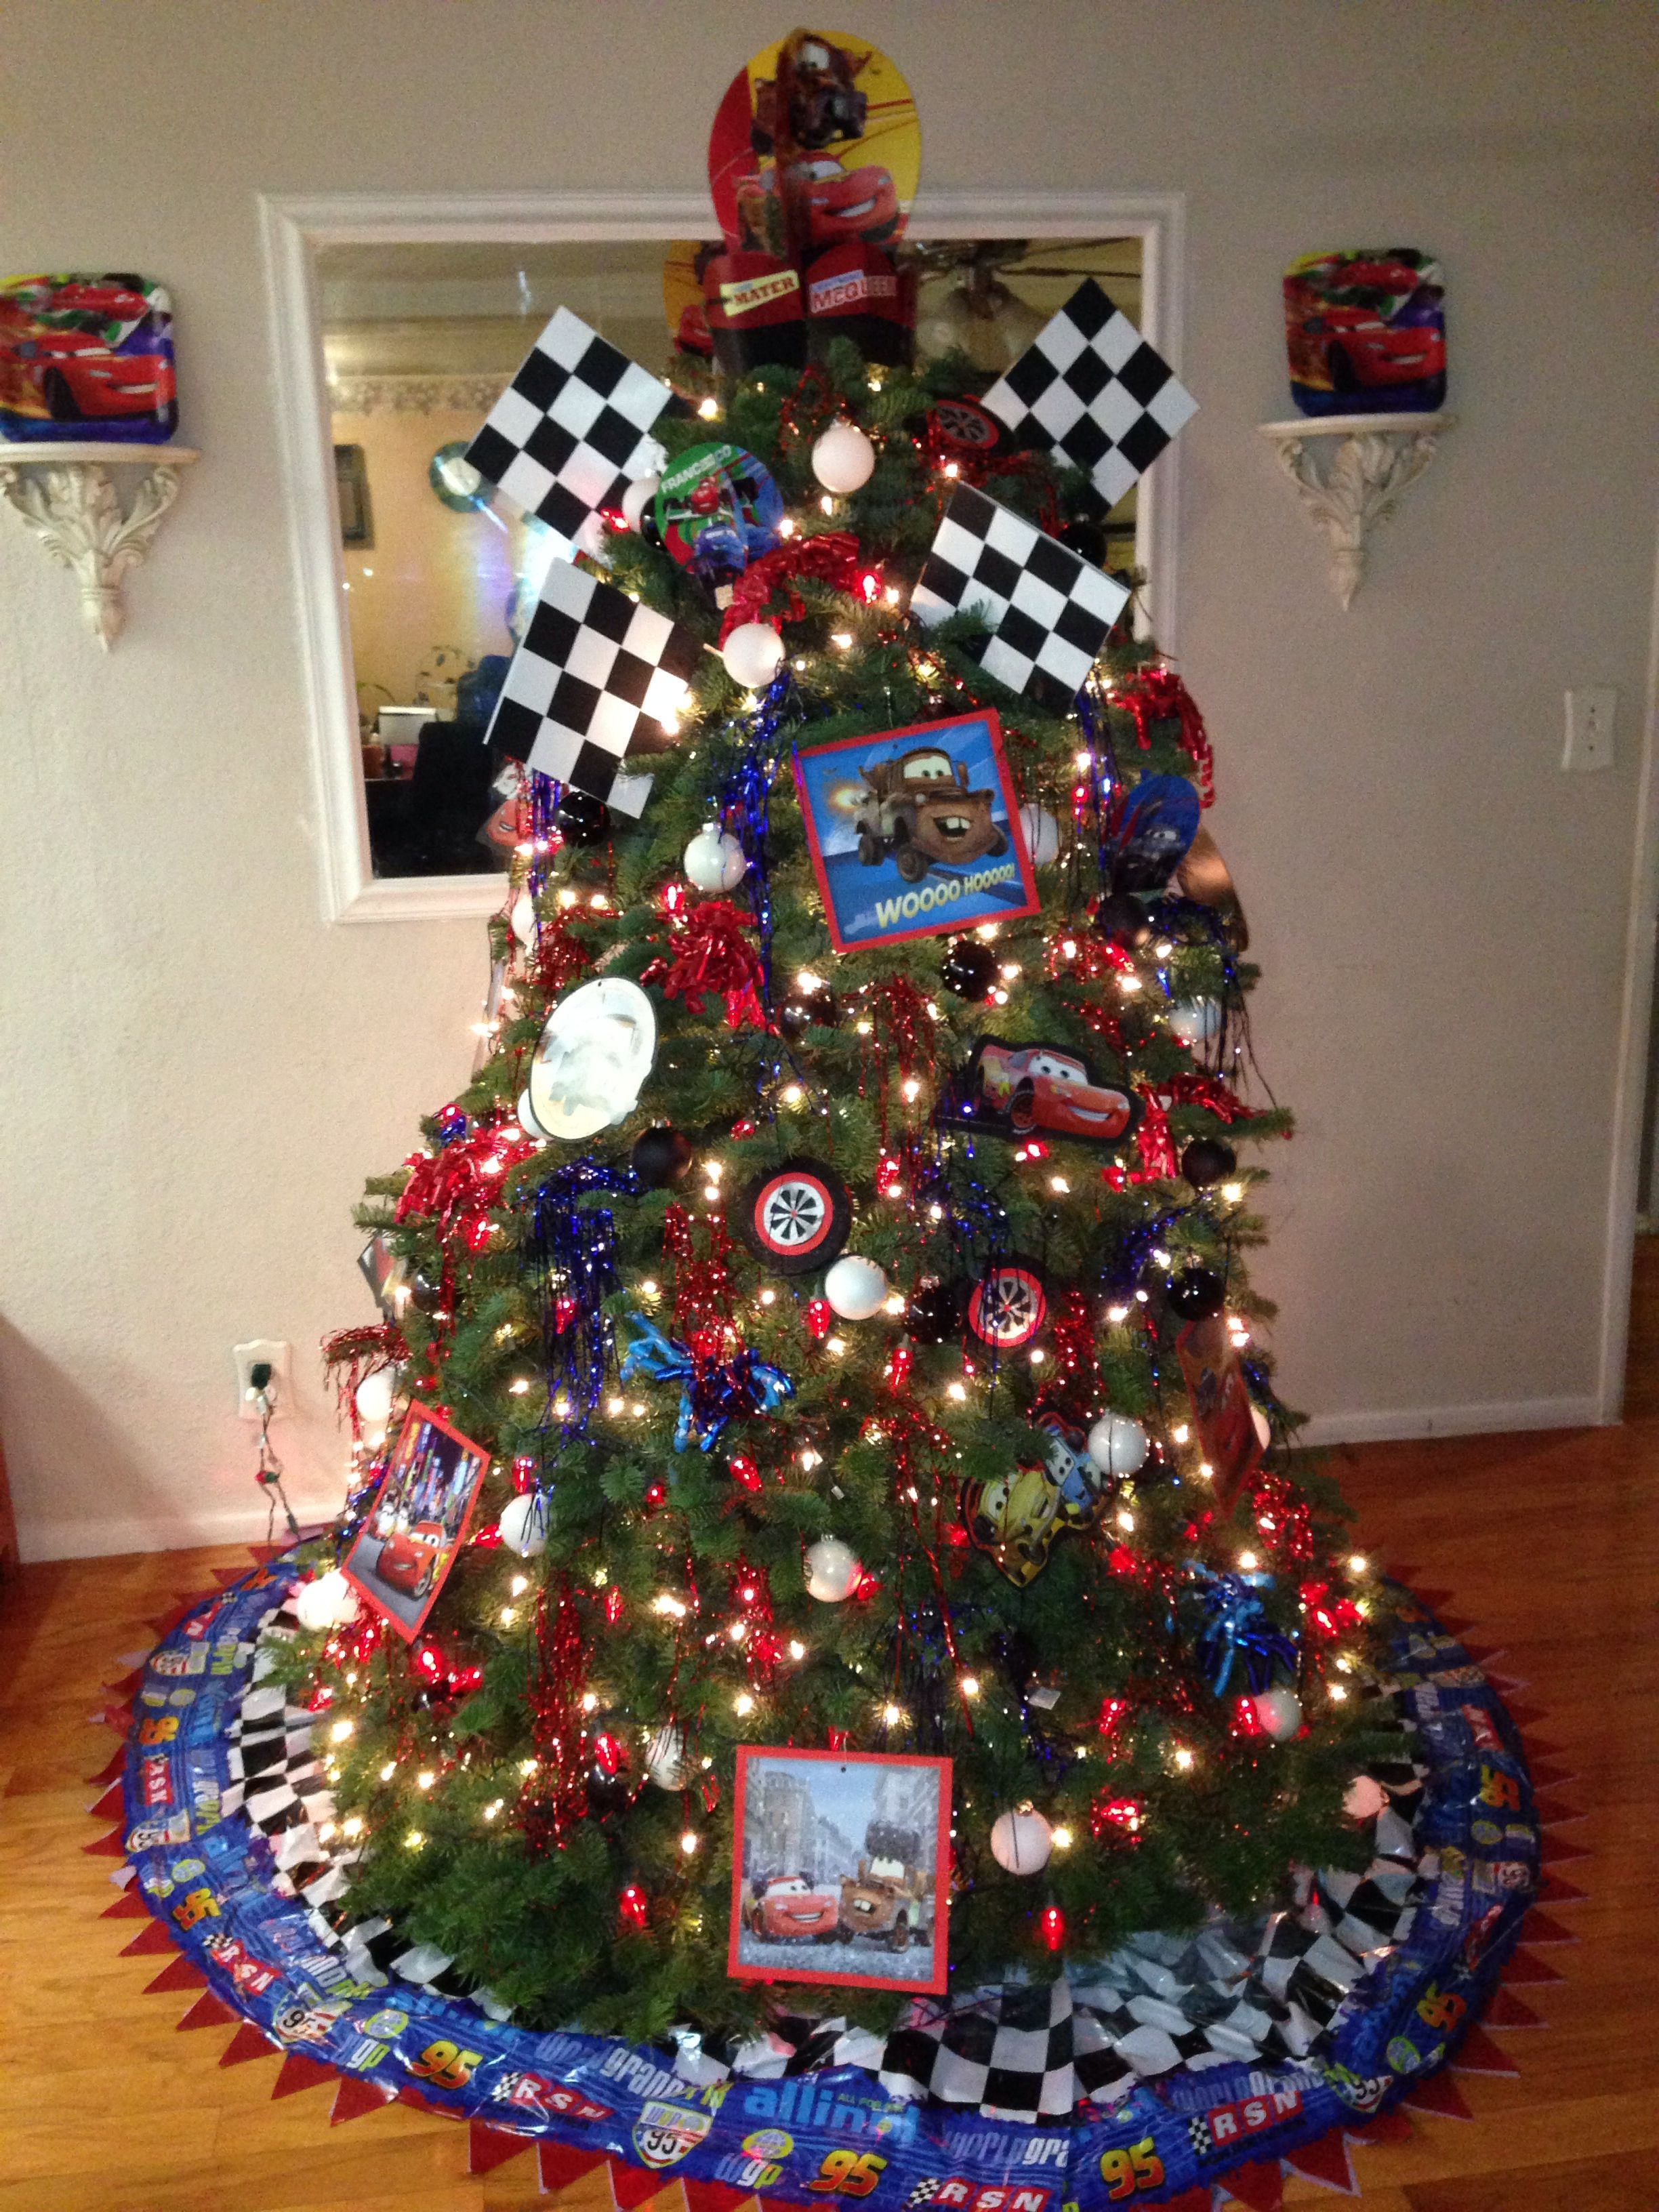 disney cars theme christmas tree disney christmas decorations christmas tree decorations christmas trees for